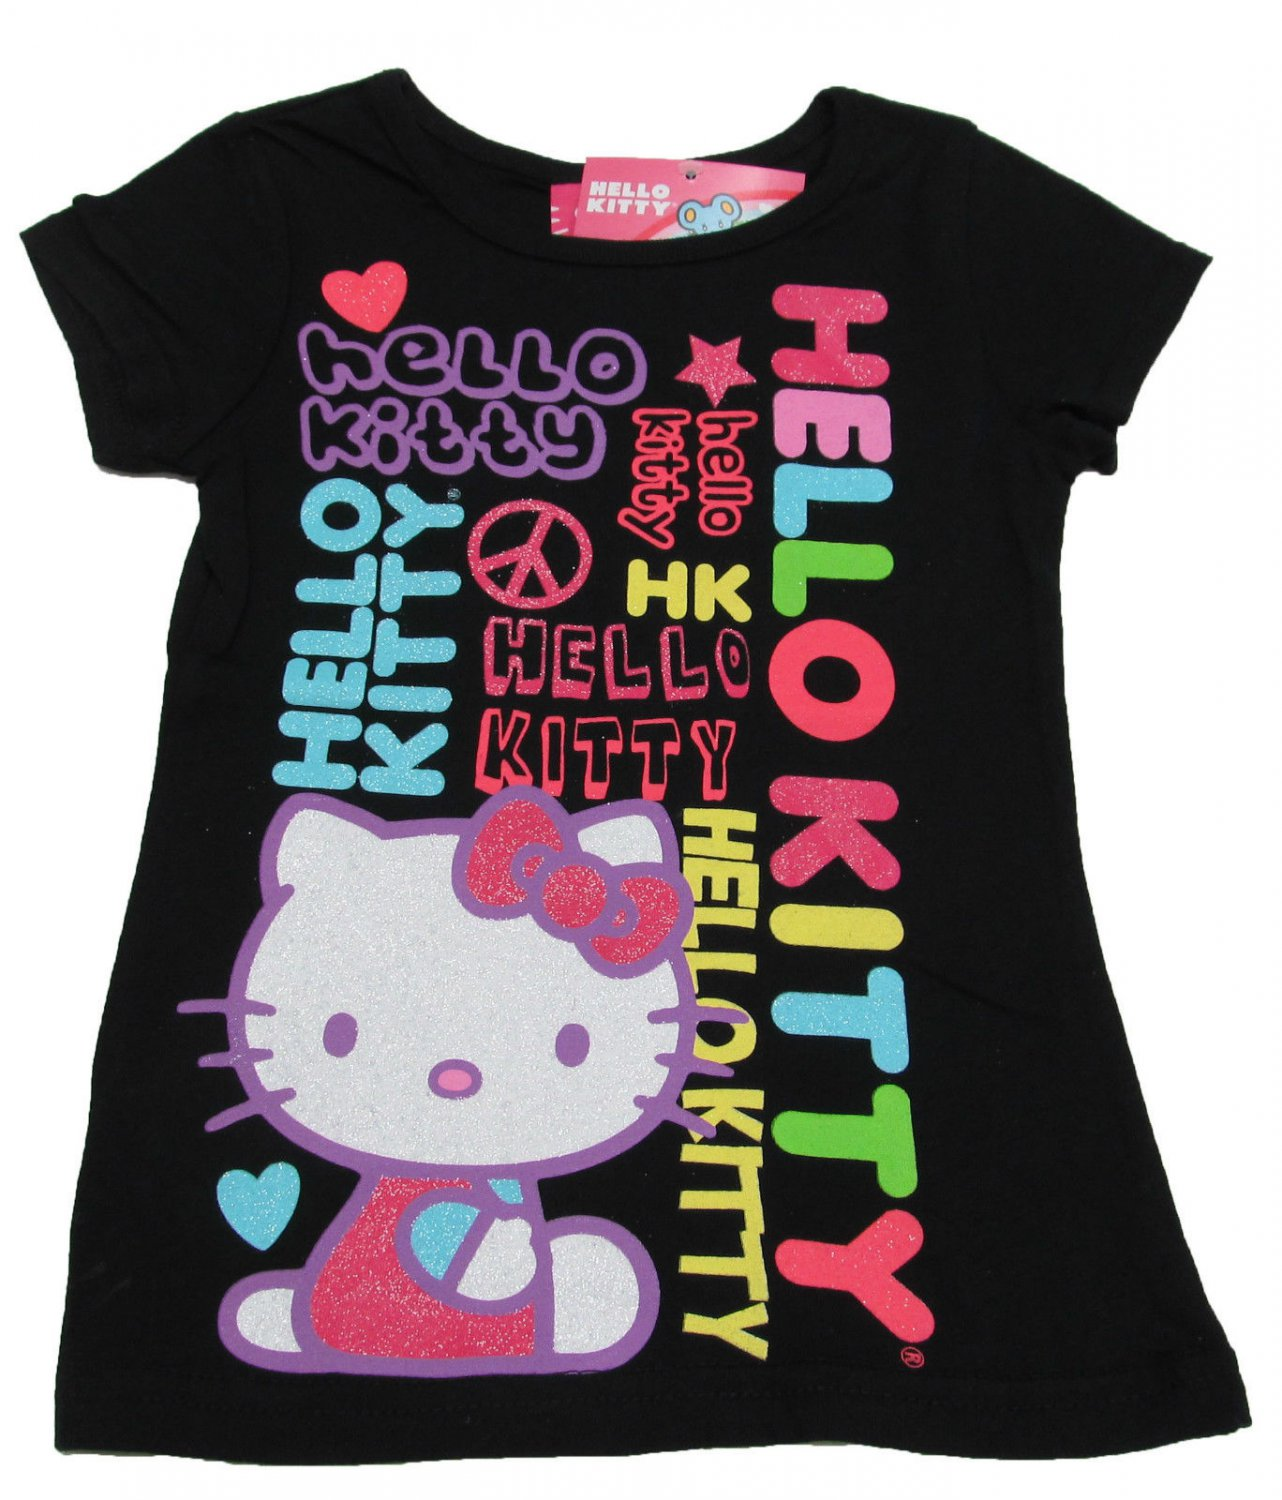 Hello kitty girls size 5 logo tee shirt black short sleeve for Hello kitty t shirt design